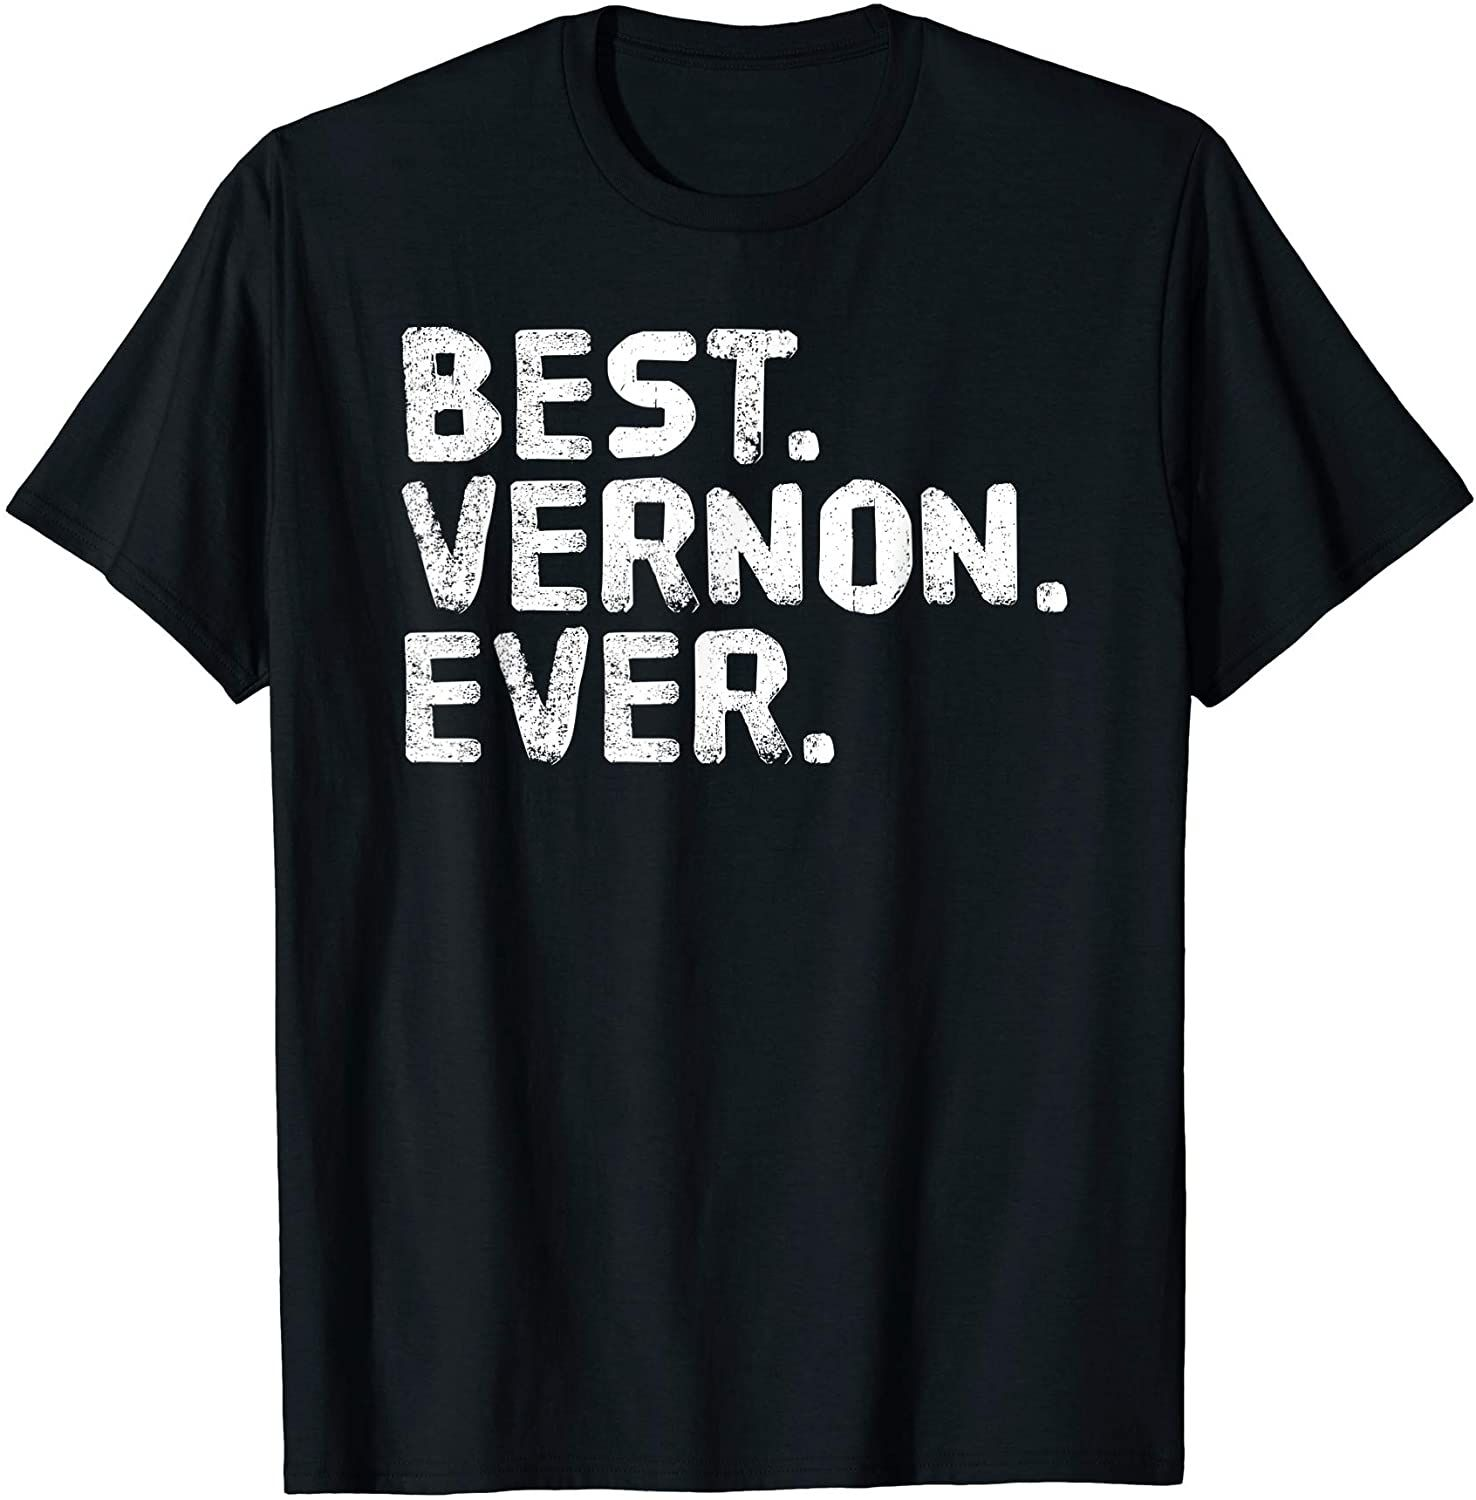 Best vernon ever funny men fathers gift idea tshirt